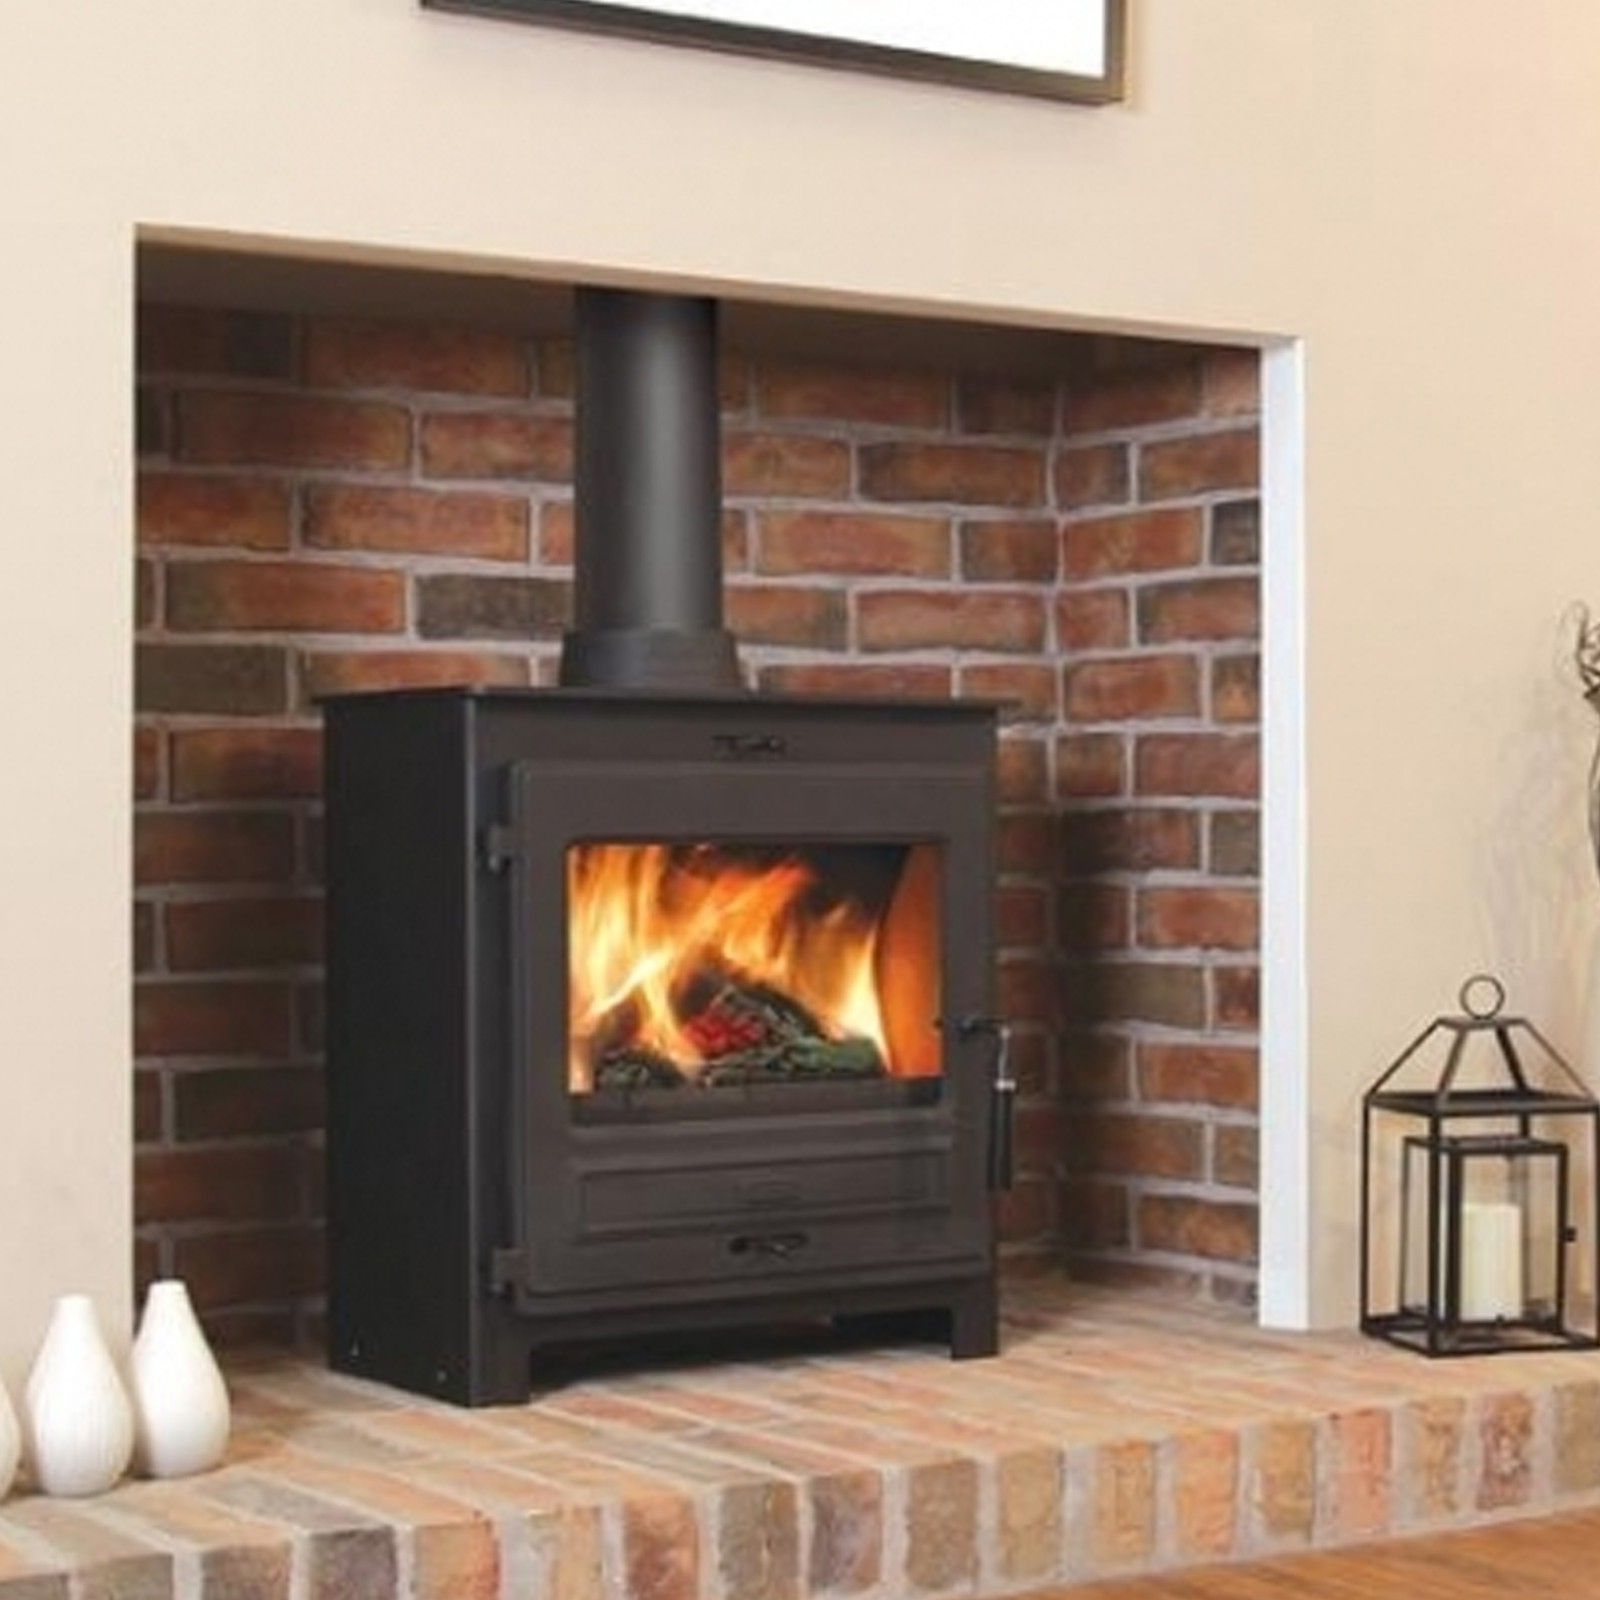 Flavel No 2 Multifuel Stove In 2019 Multi Fuel Stove